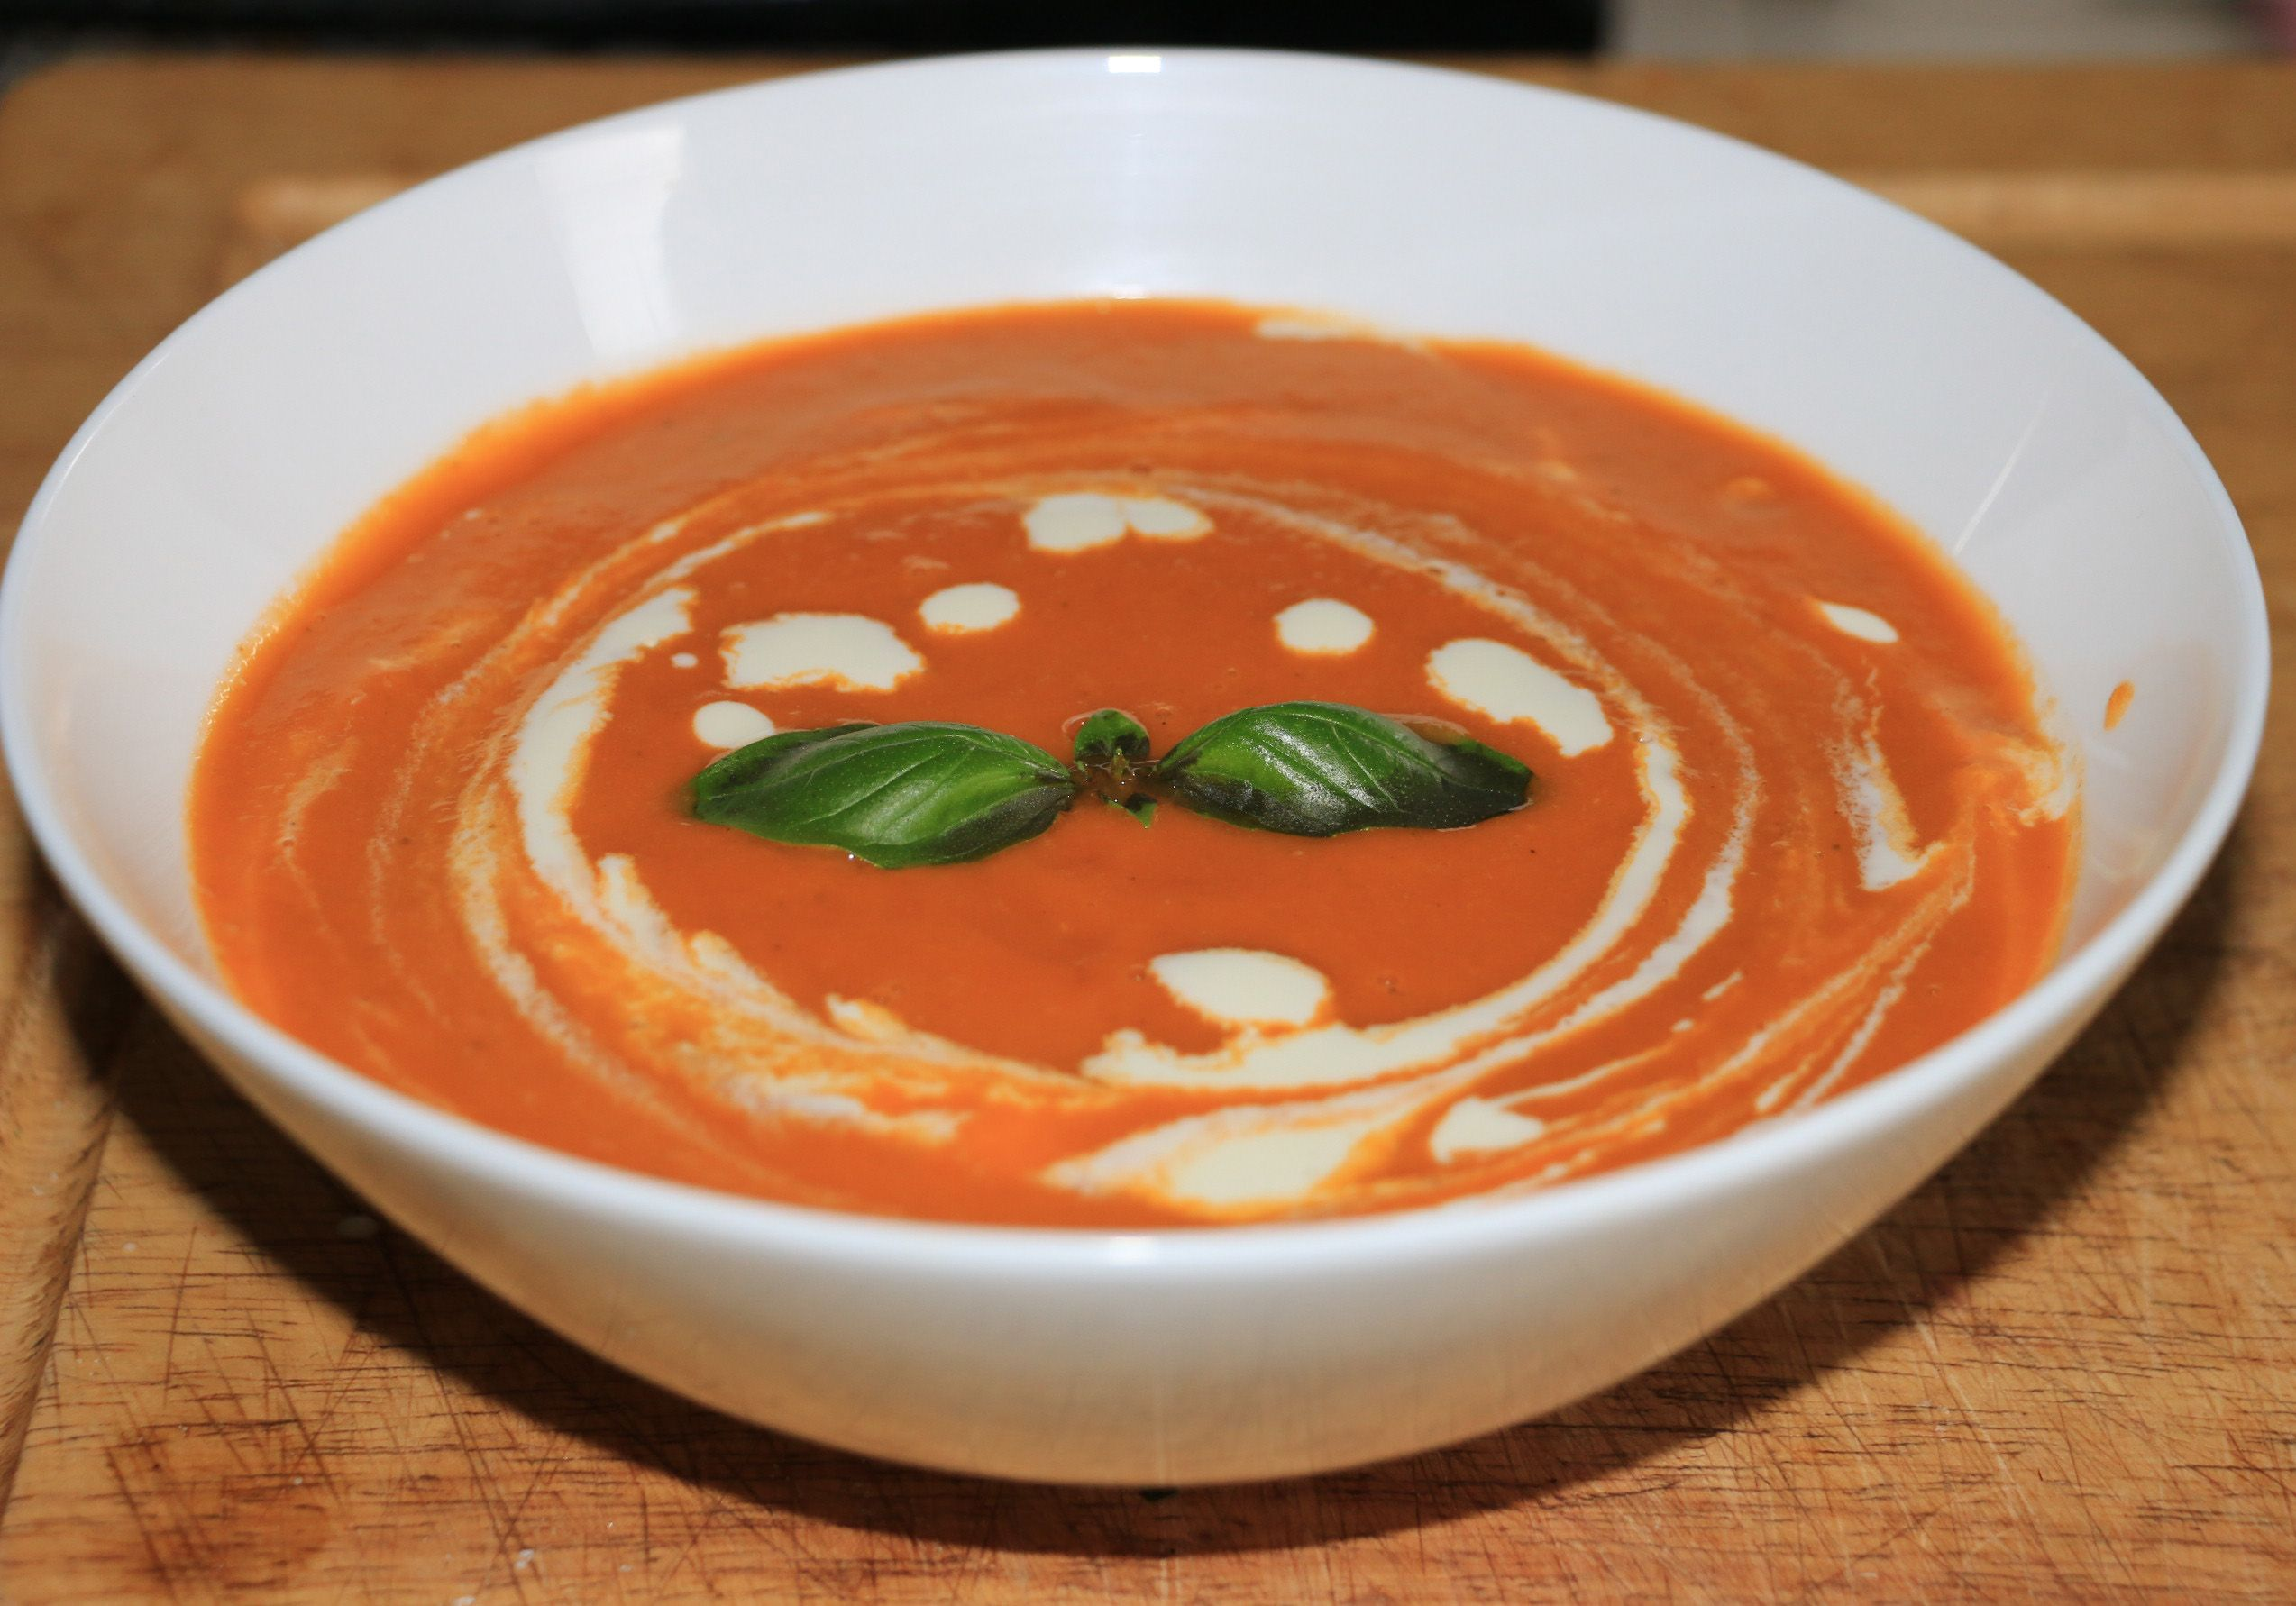 Home made TOMATO SOUP  Calories - 79 Carbs  - 19gm Sugars - 8gm Fat - 1gm Protein - 5gm Sodium - 365gm  Serves 10 (large serves)  Recipe in comments :)